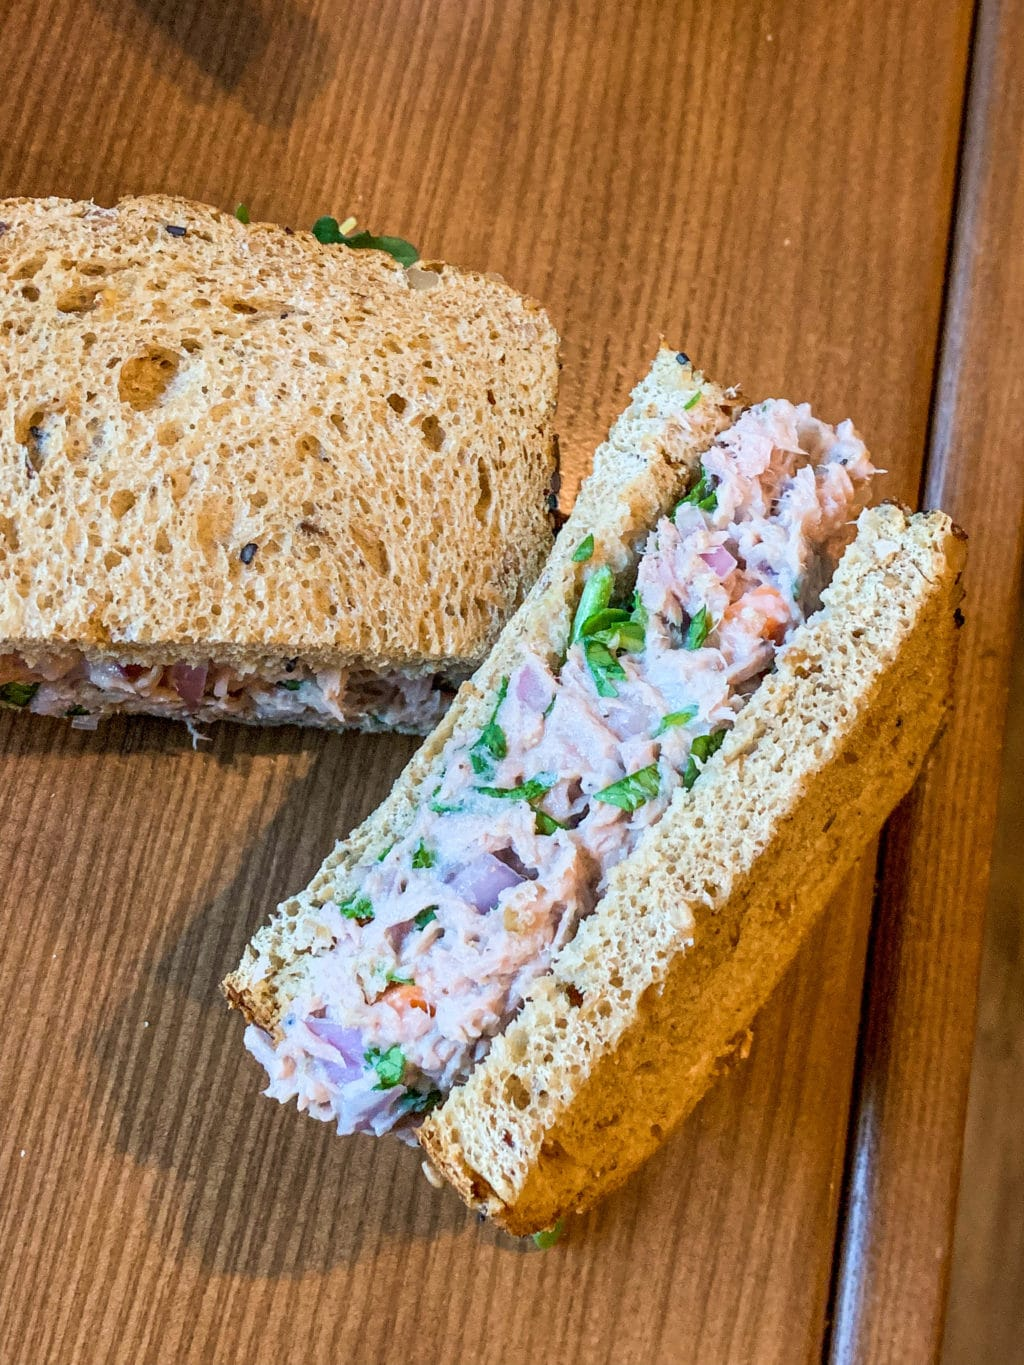 Lemon Pepper Tuna Sandwiches